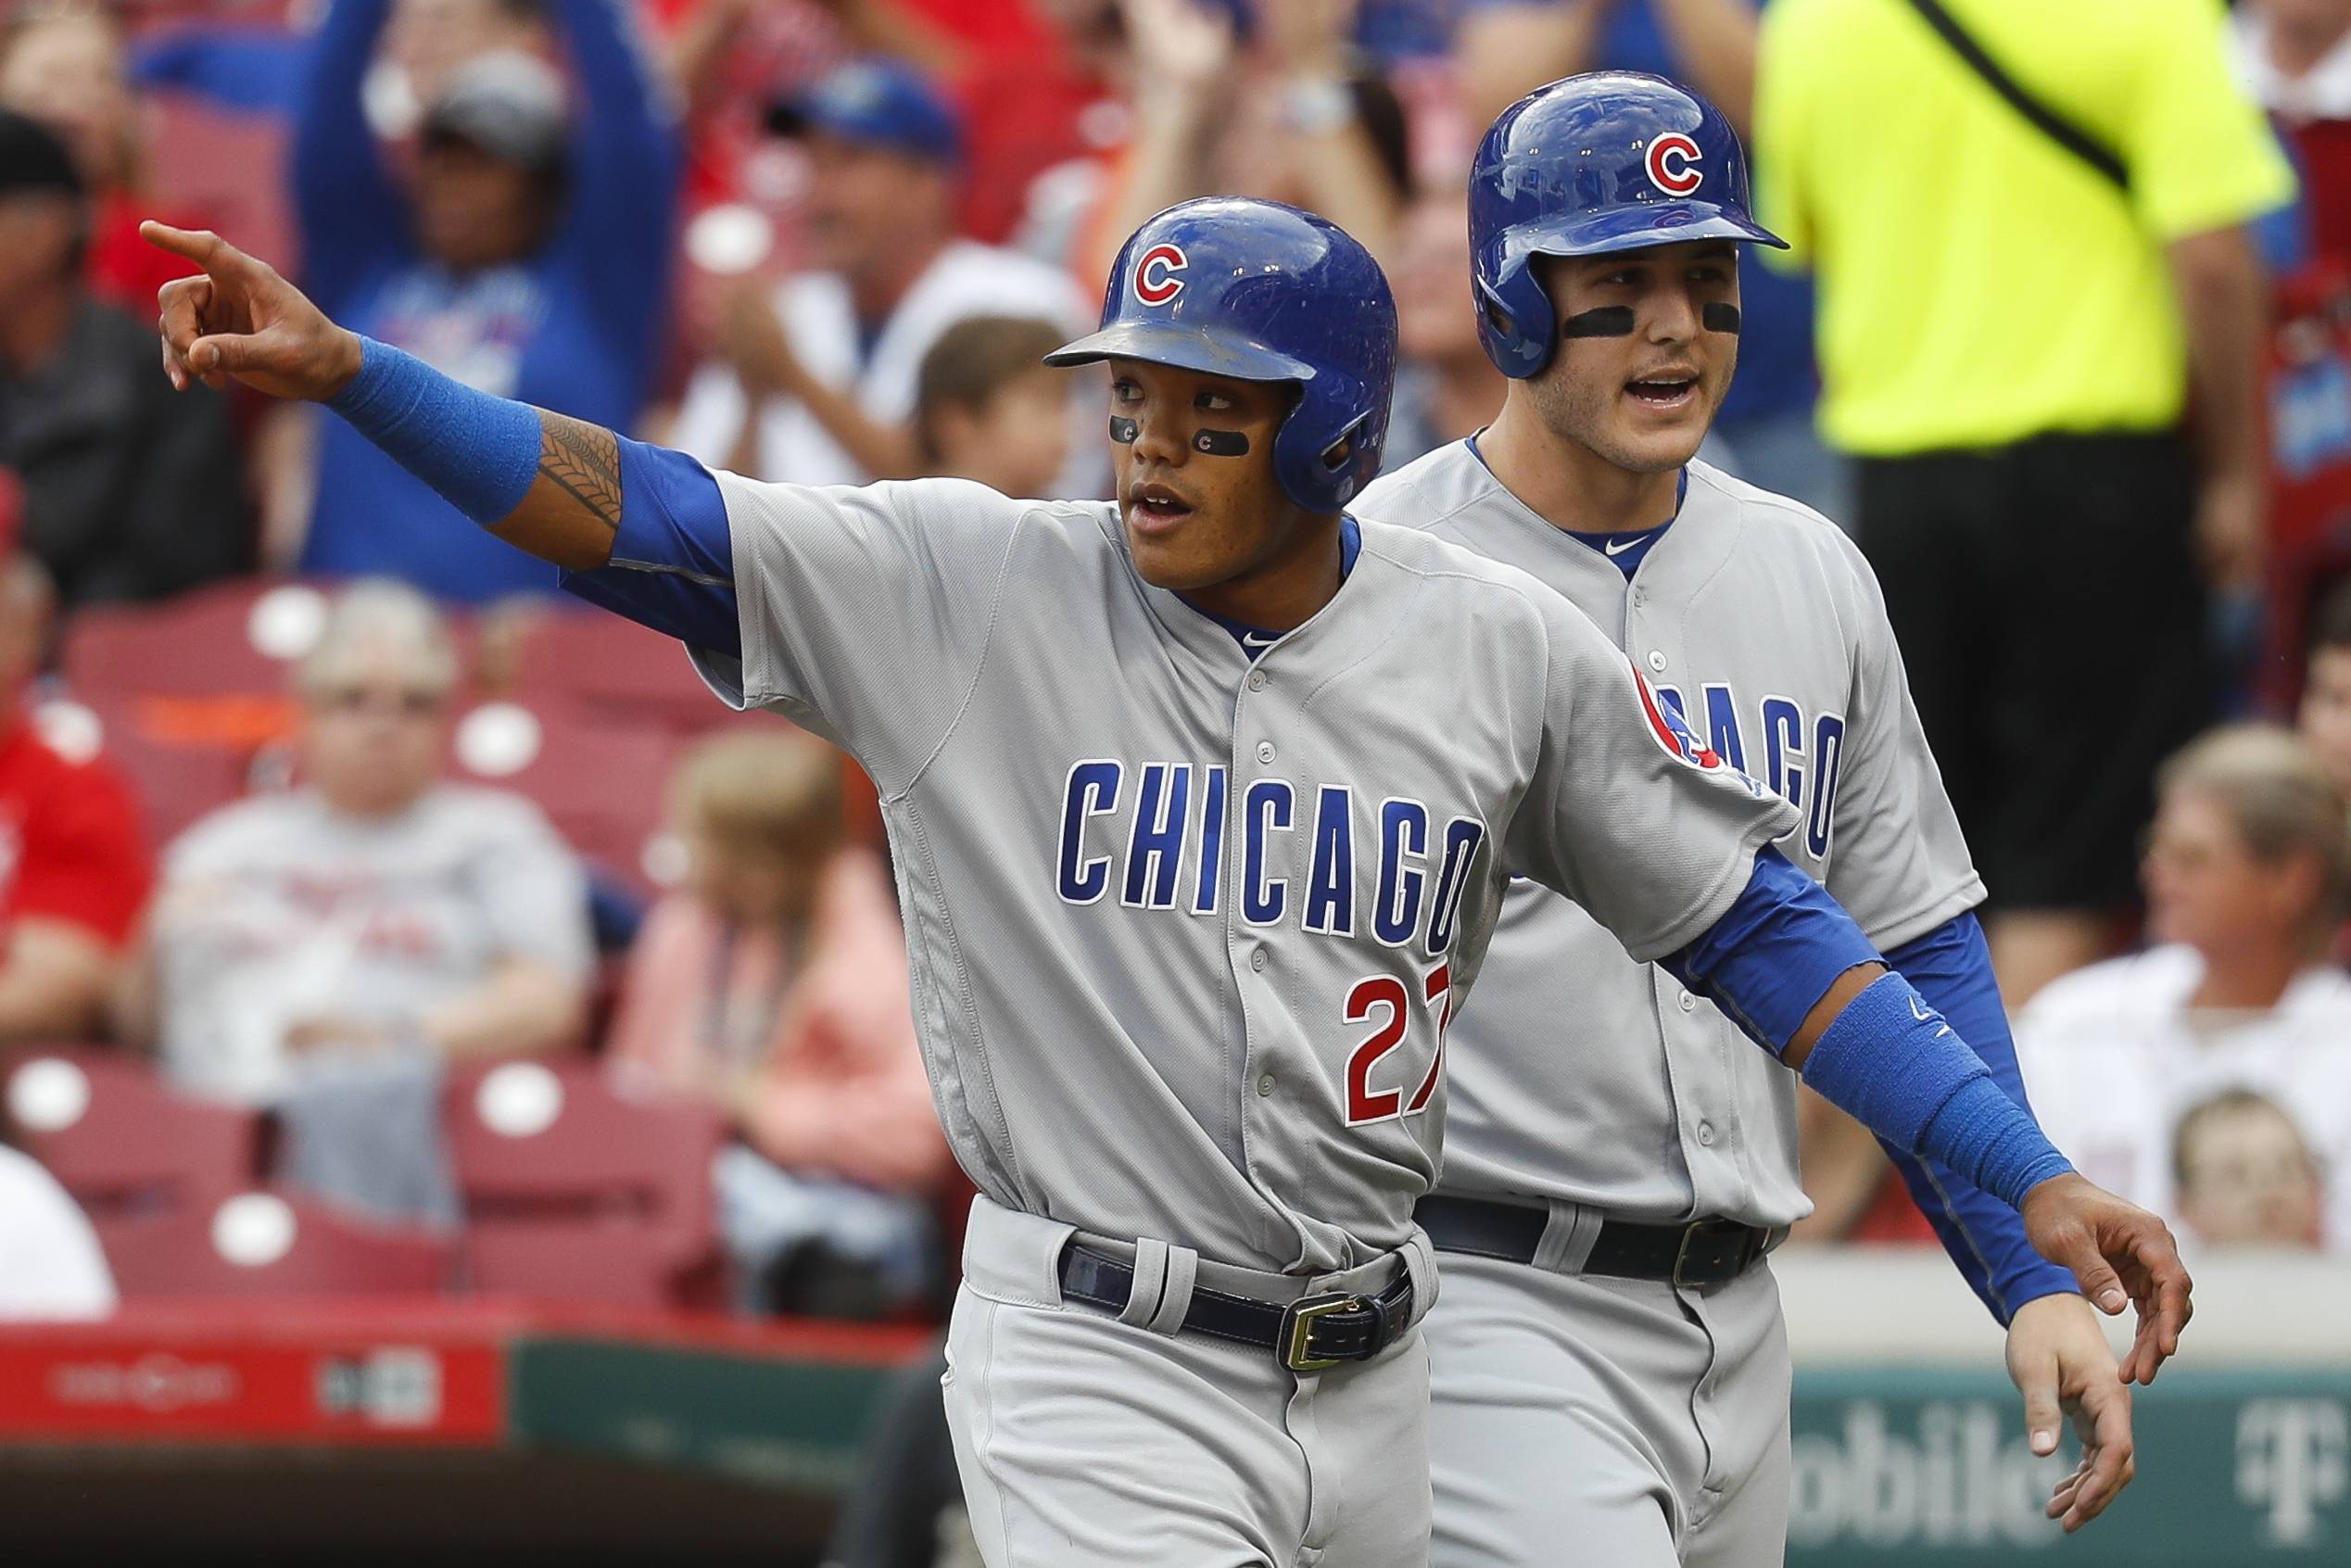 With help from veterans, young Cubs maturing nicely